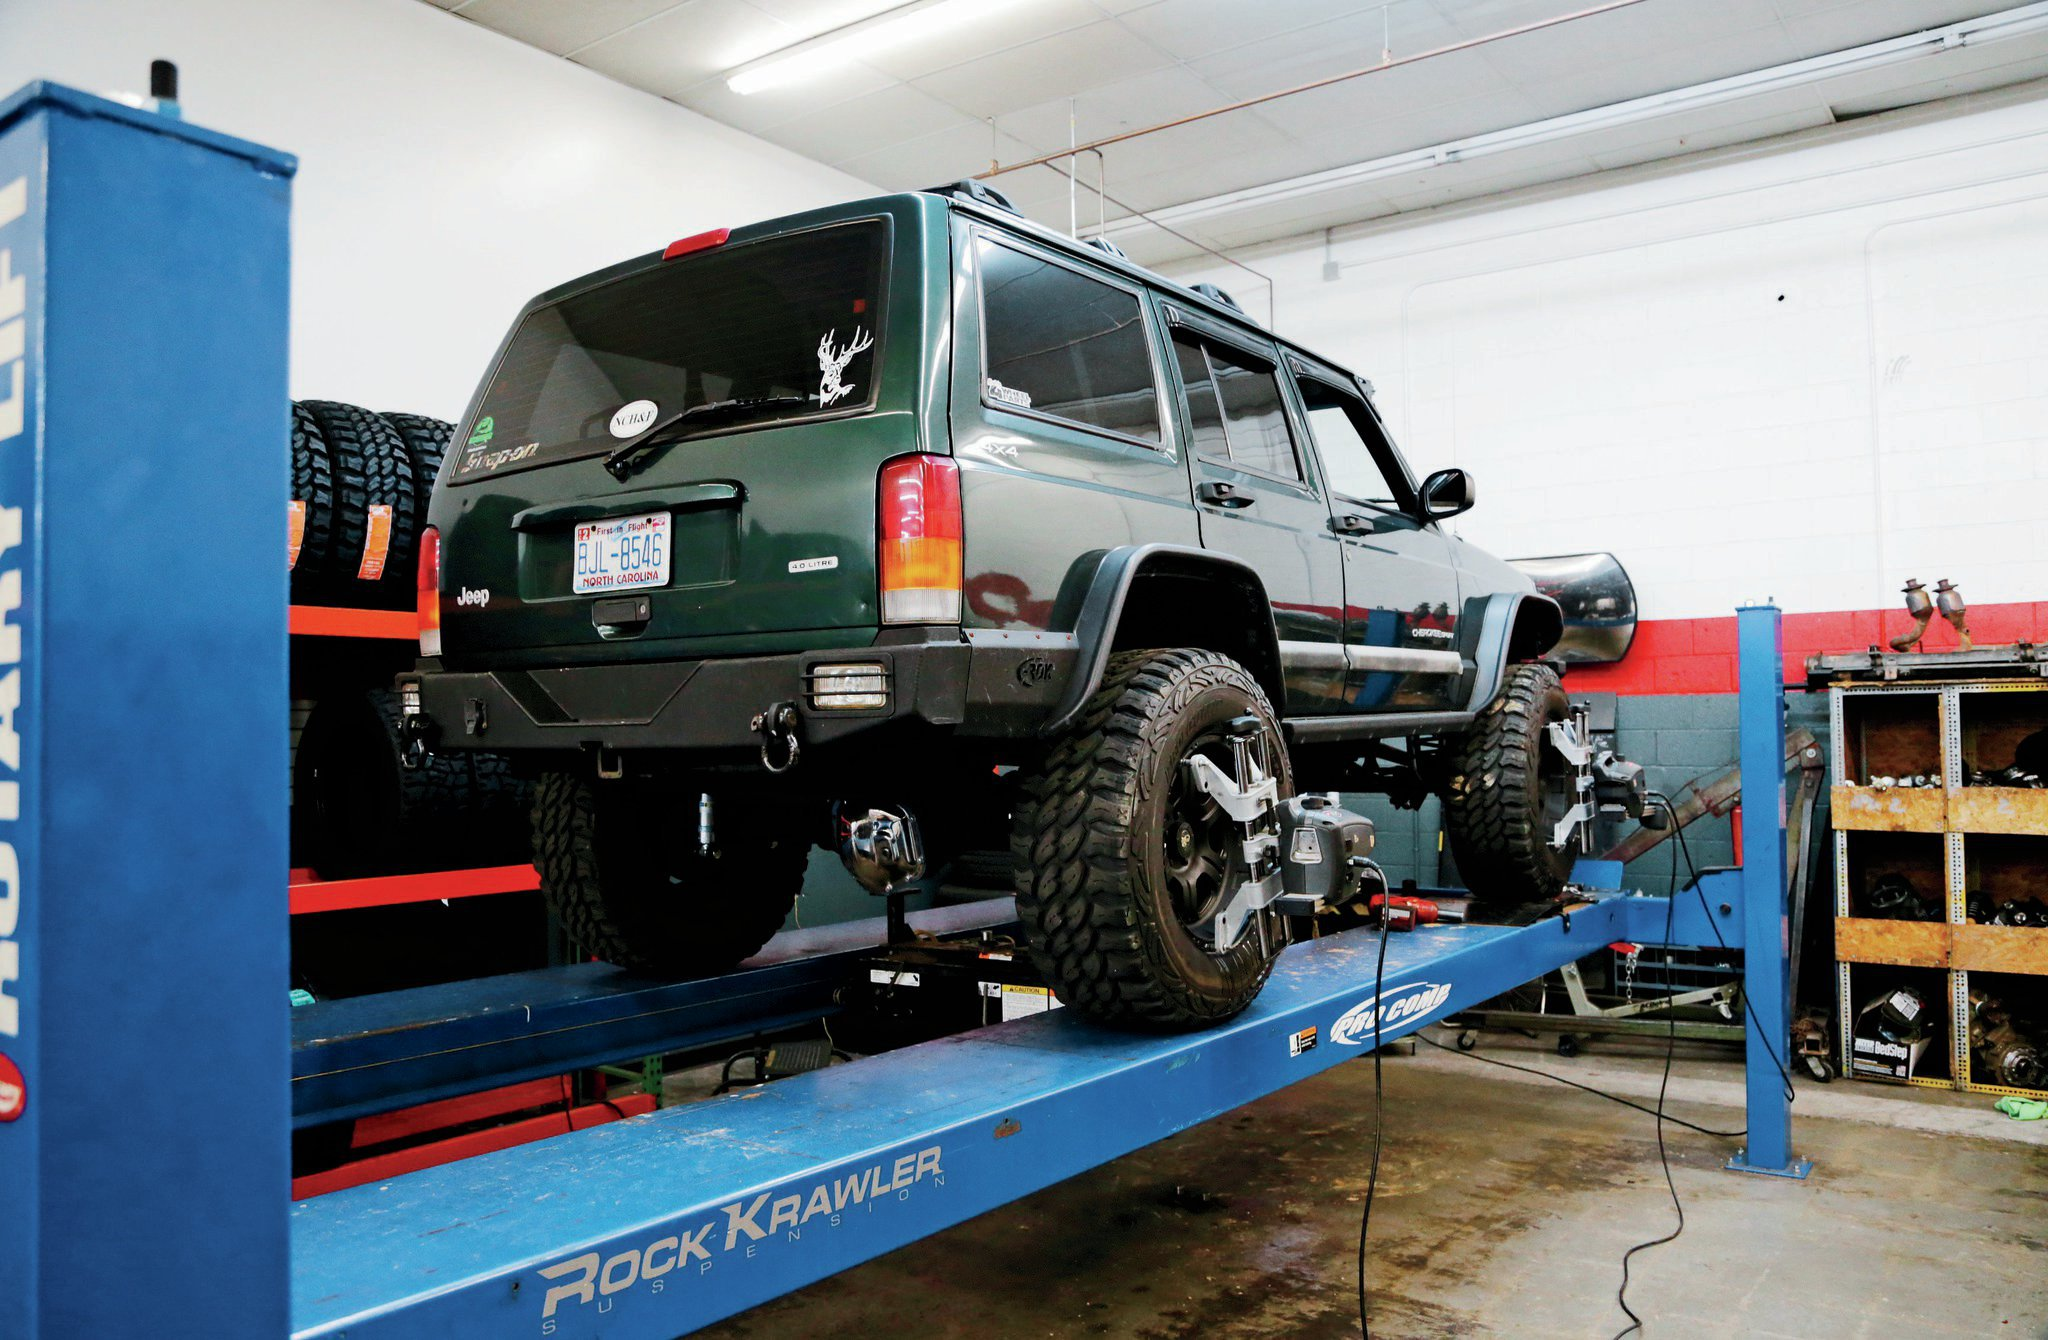 Post install, the entire Jeep's suspension needed to be double-checked for alignment. The alignment equipment at 4Wheel Parts allows them to tune wheelbase evenly, along with getting the correct steering settings.